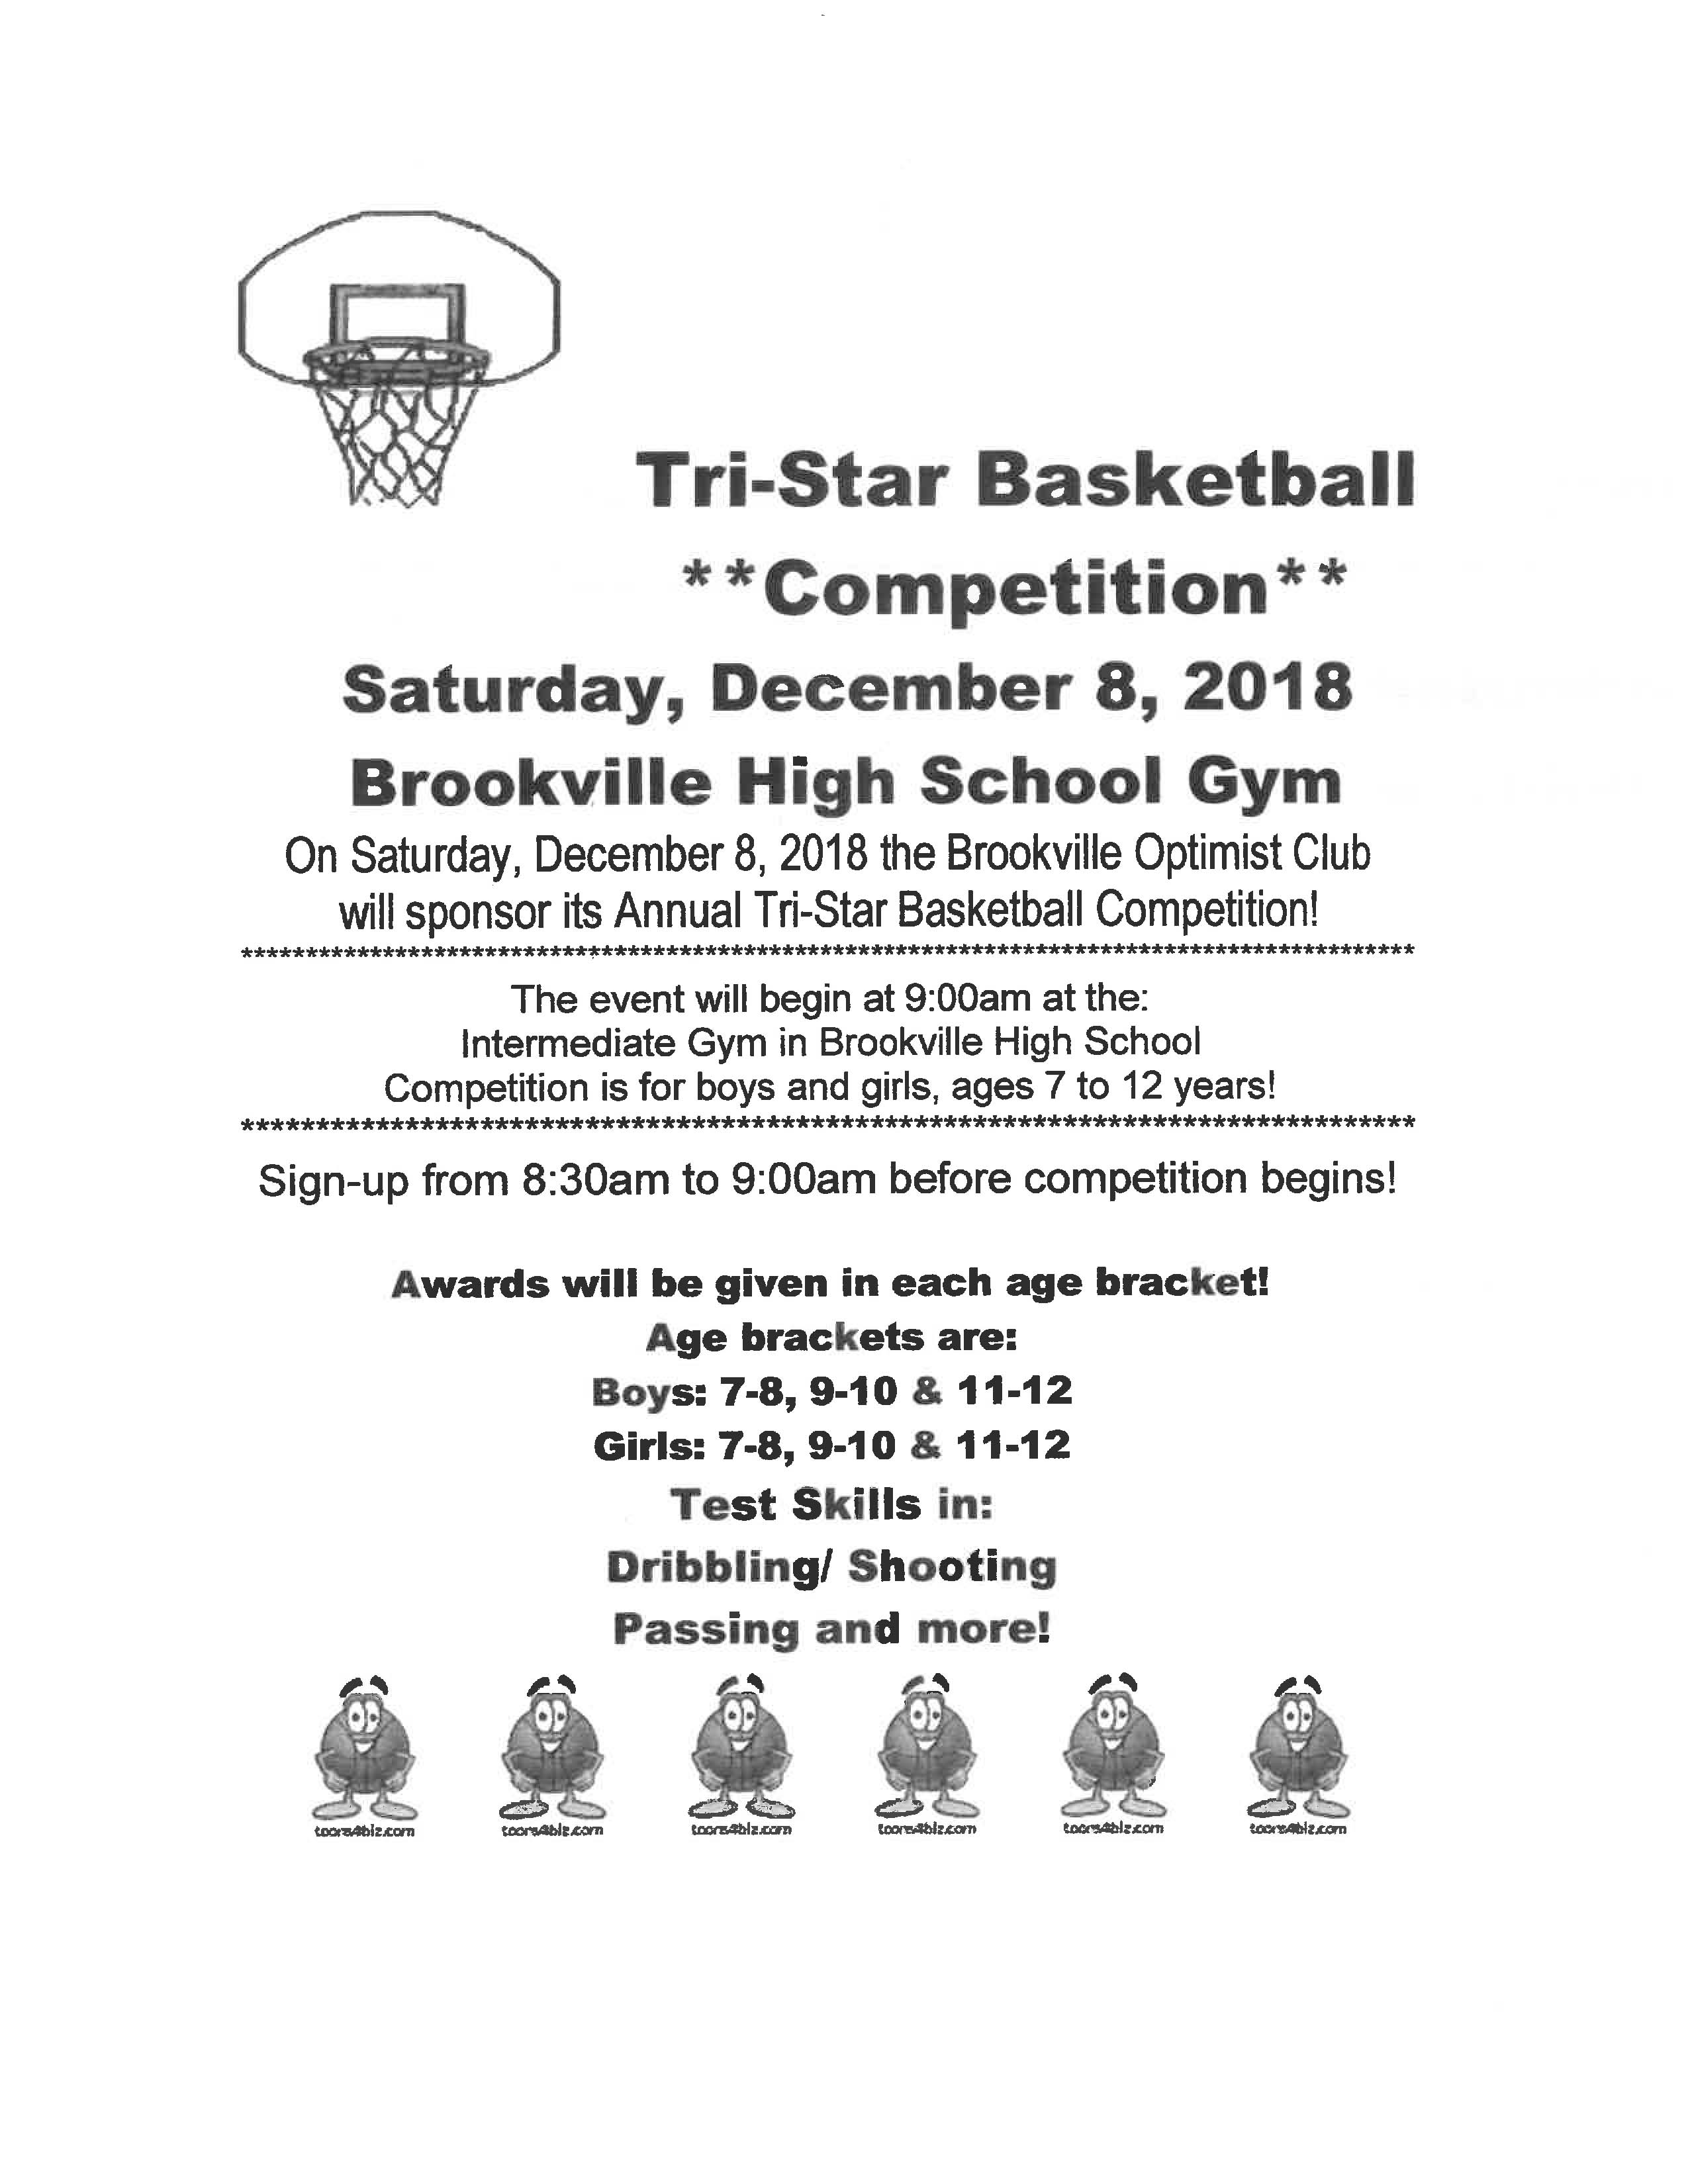 Tri-Star Basketball Competition